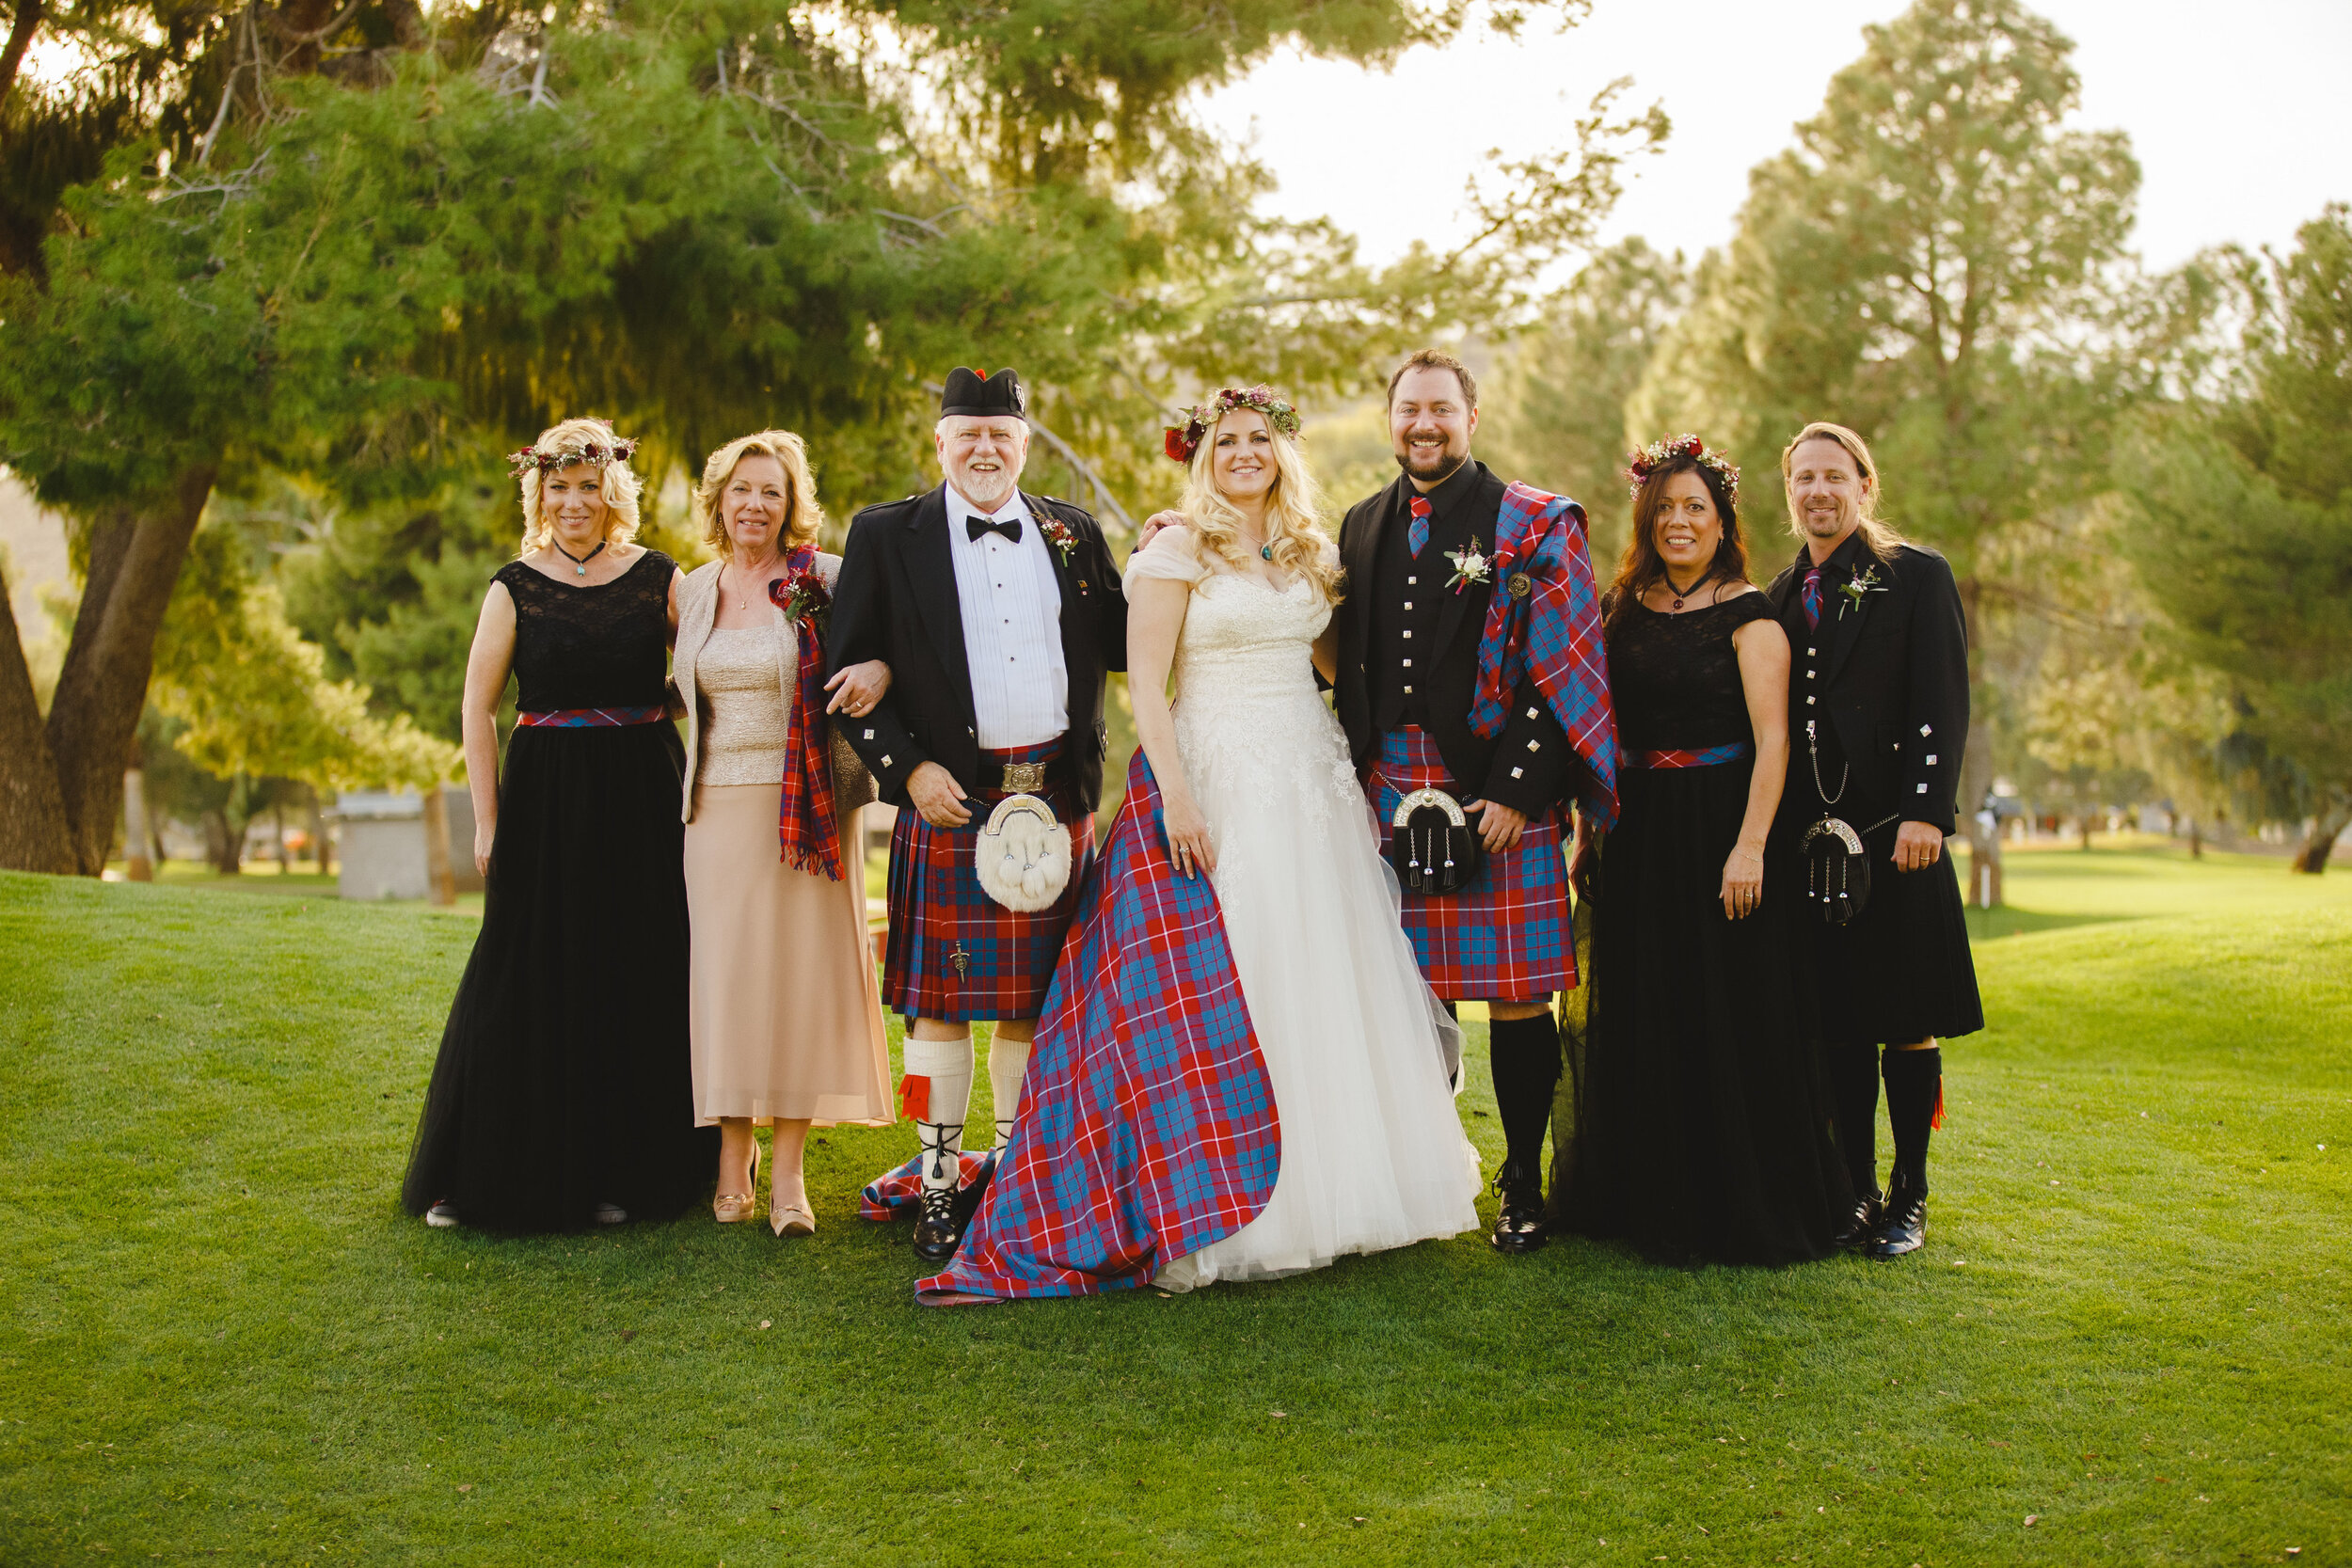 Bride and groom in Scottish traditional kilt highland dress with their parents portrait photography with redesigned detachable Scottish tartan train.jpg